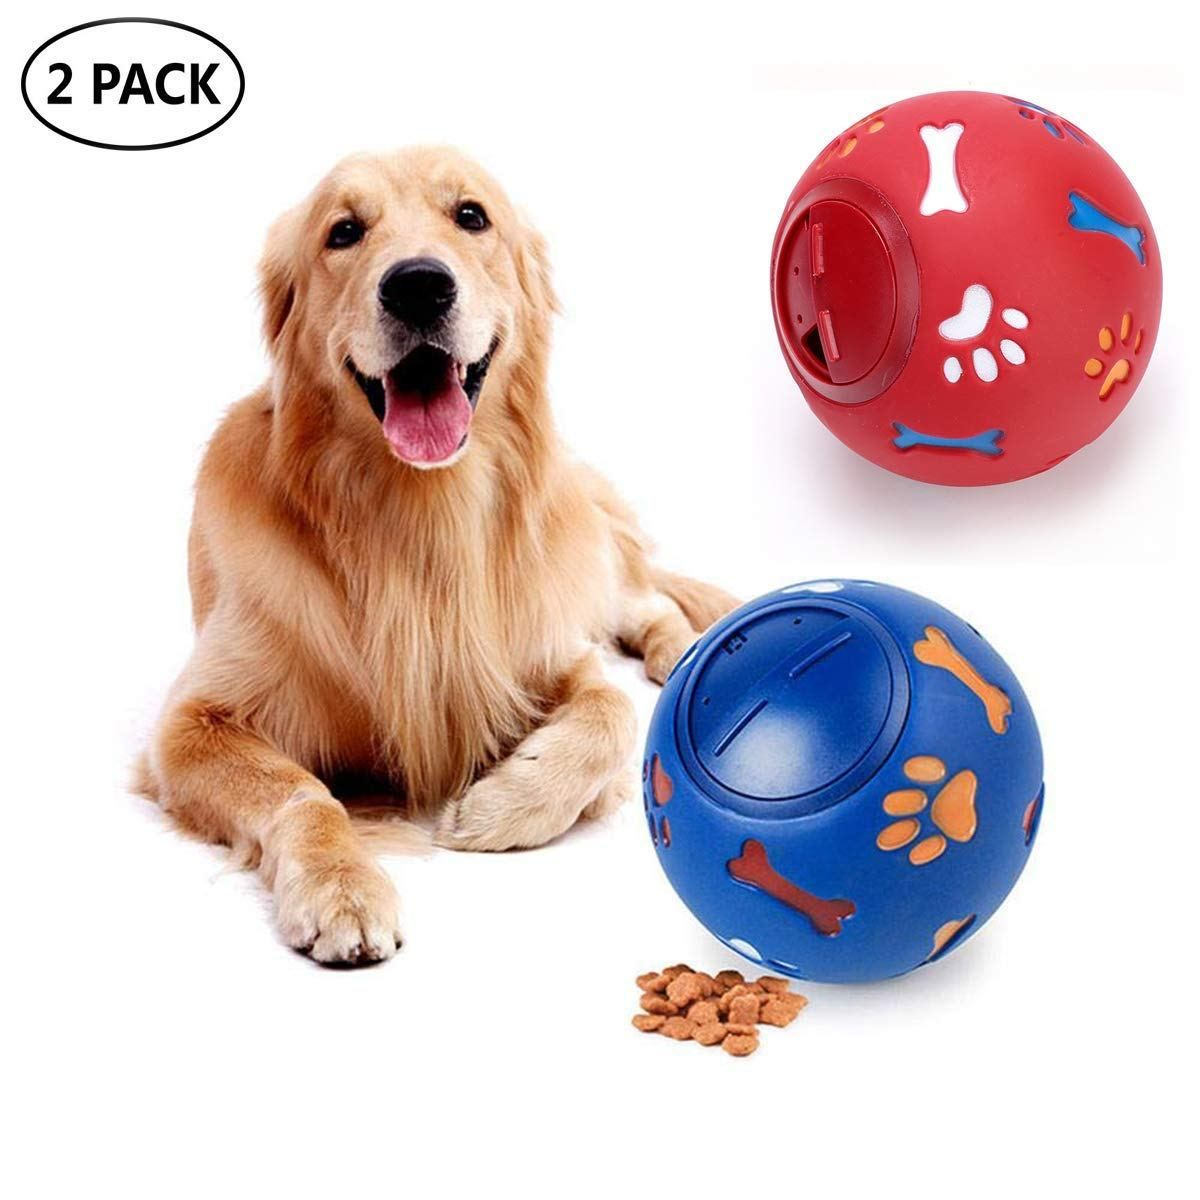 Info's : LEMON PET Puppy Dog Food Dispensing Feeder Ball IQ Treat Interactive Dogs Toy, Adjustable¡­ - Lovely Novelty